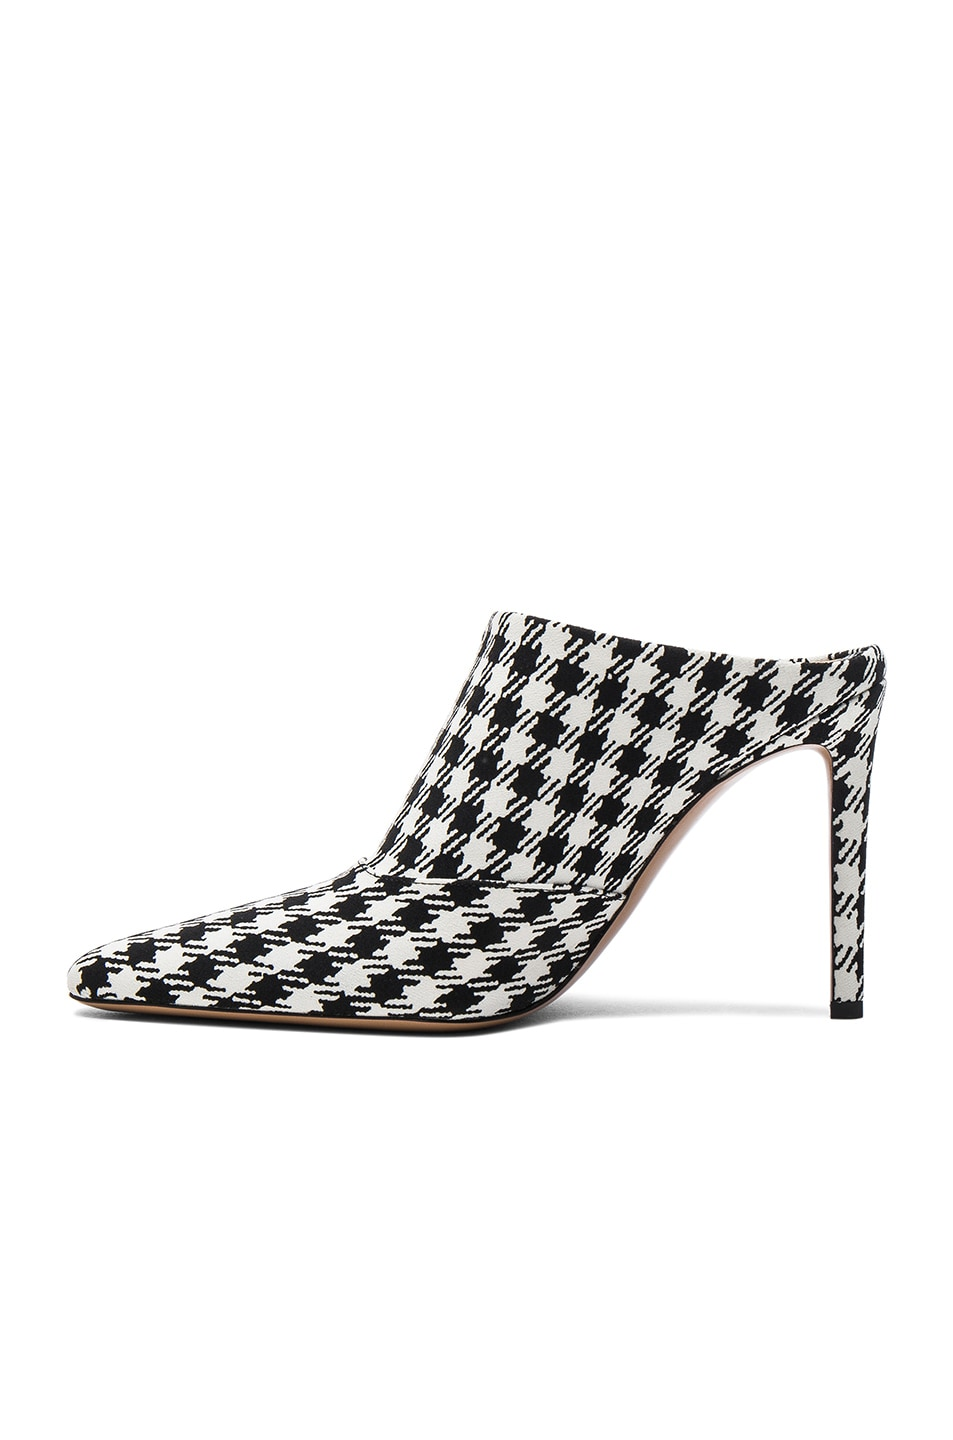 Image 5 of Altuzarra Canvas Davidson Mules in Black & White